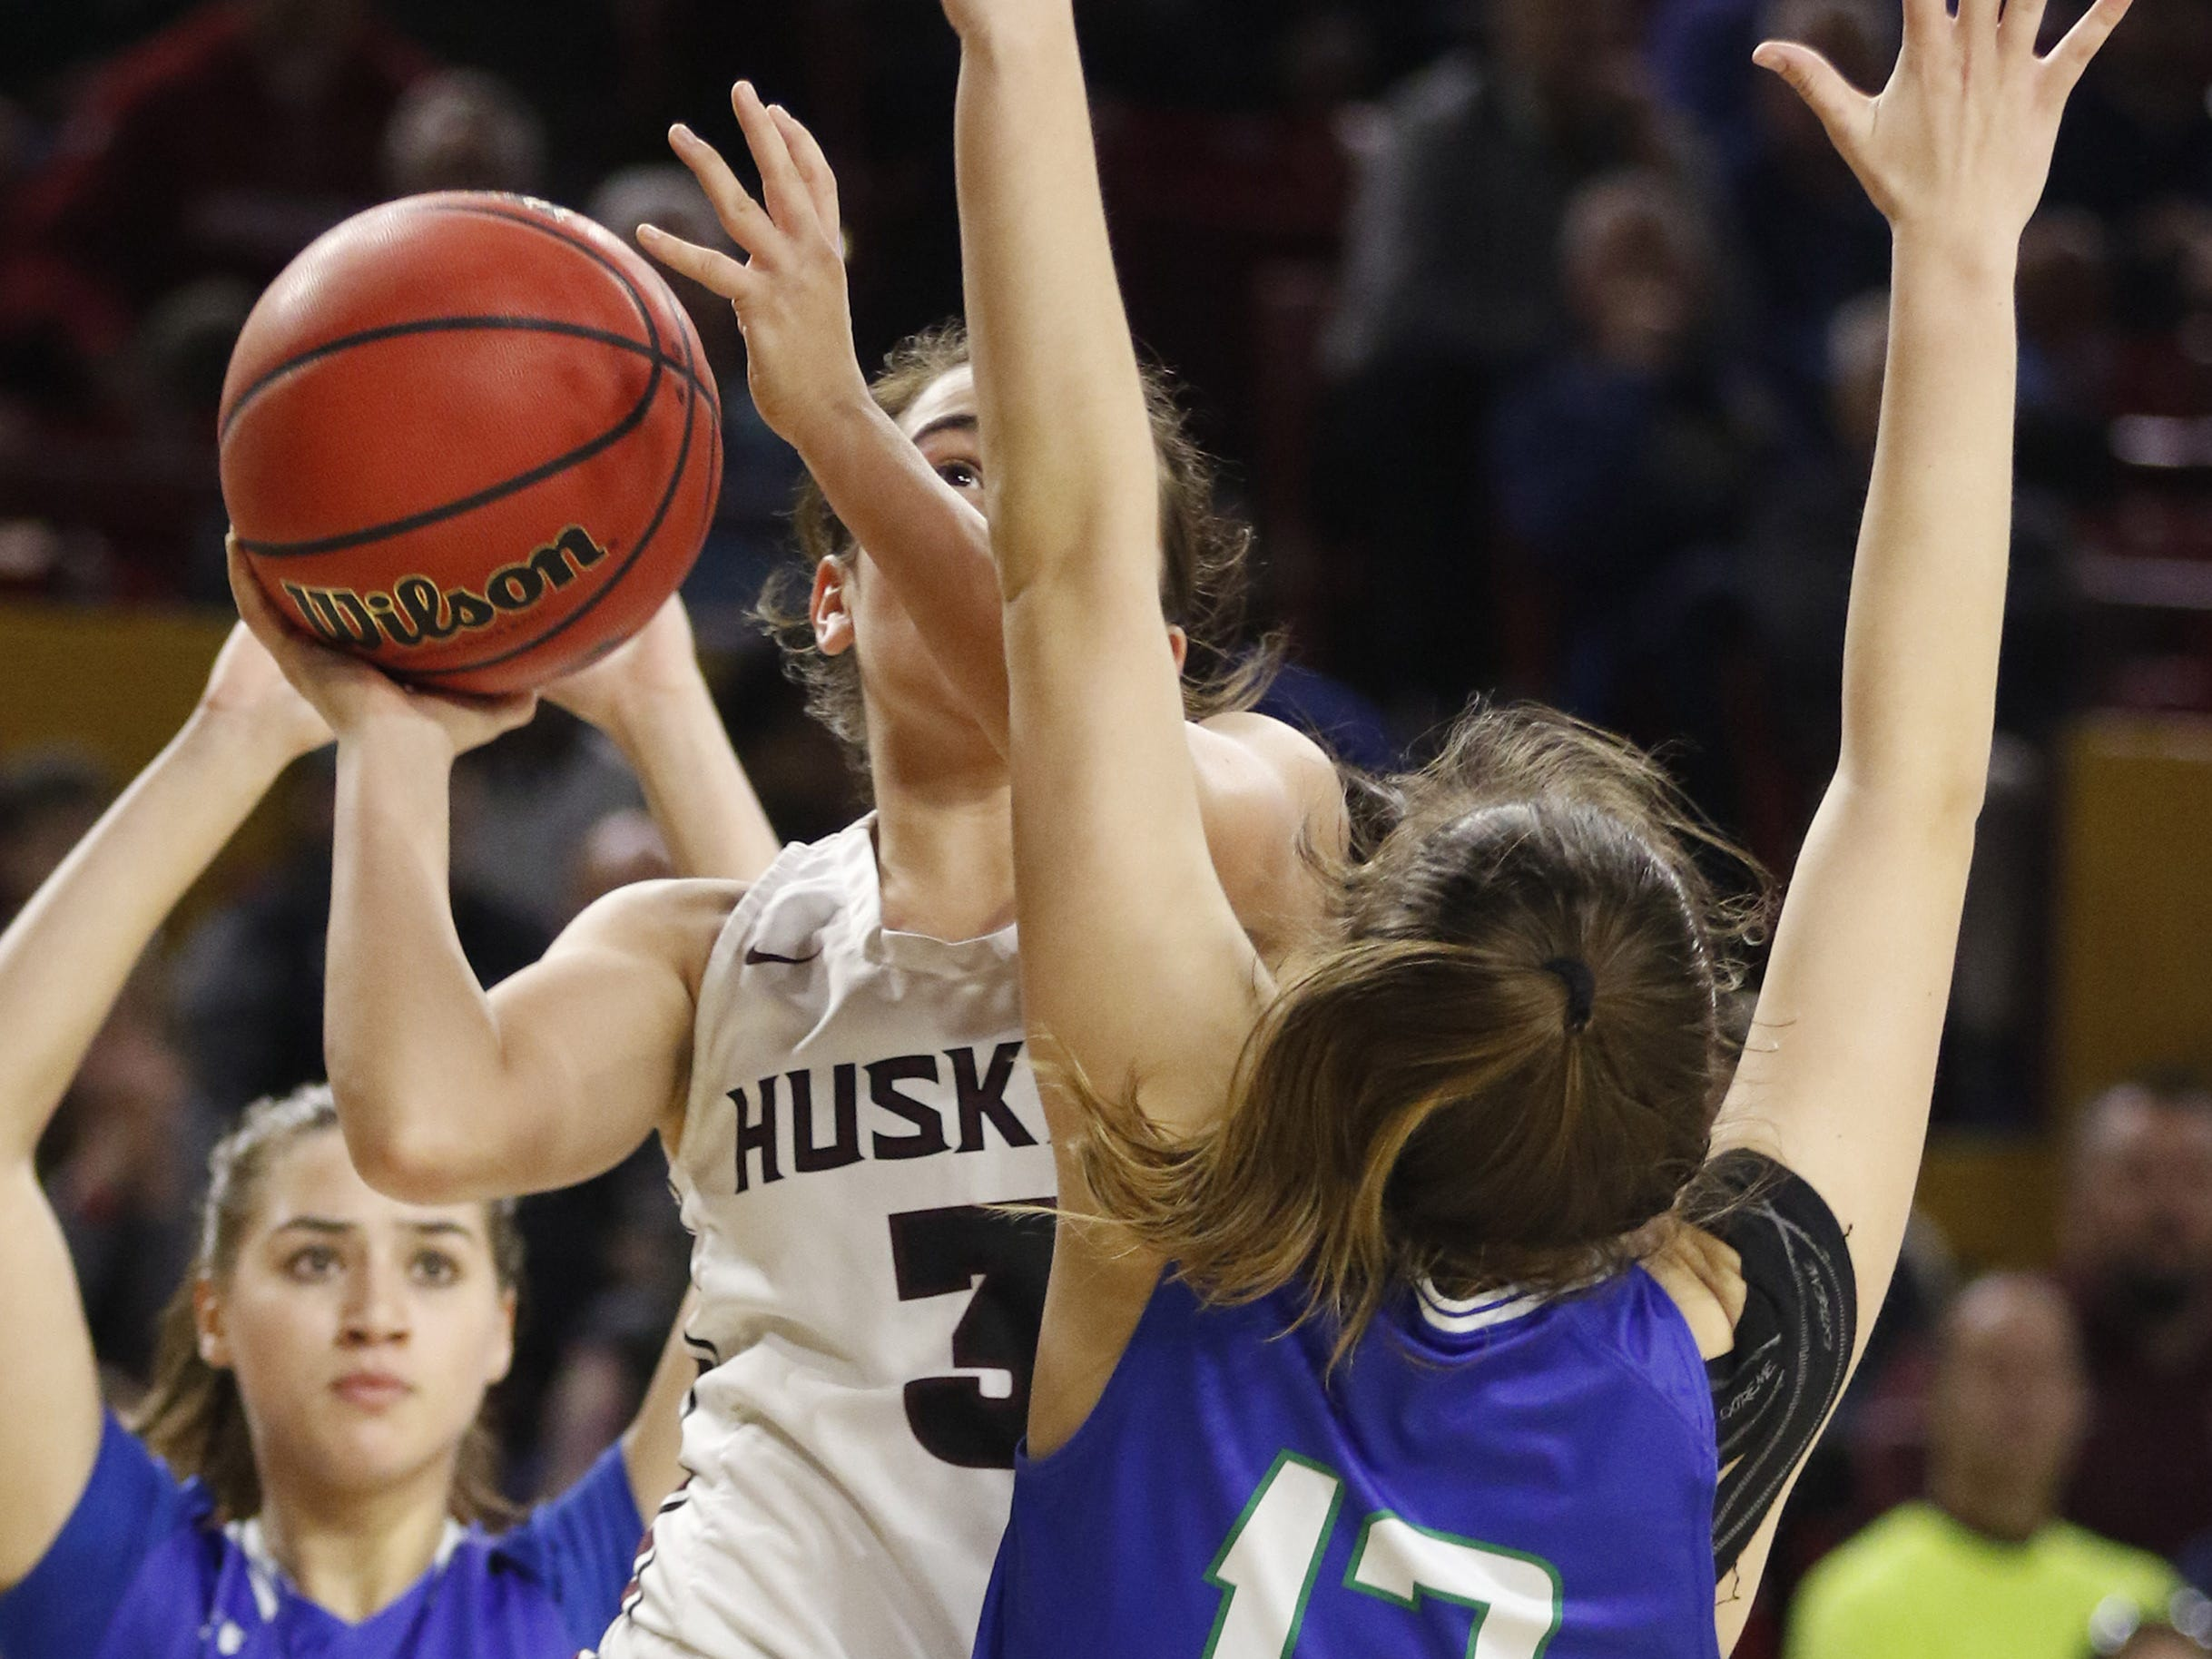 Hamilton's Graciela Roybal (3) eyes the basket as she drives to the lane against Xavier's Addie PutnamÊ(12) during the 6A Girls State Championship at Wells Fargo Arena in Tempe Tuesday, Feb 26, 2019.